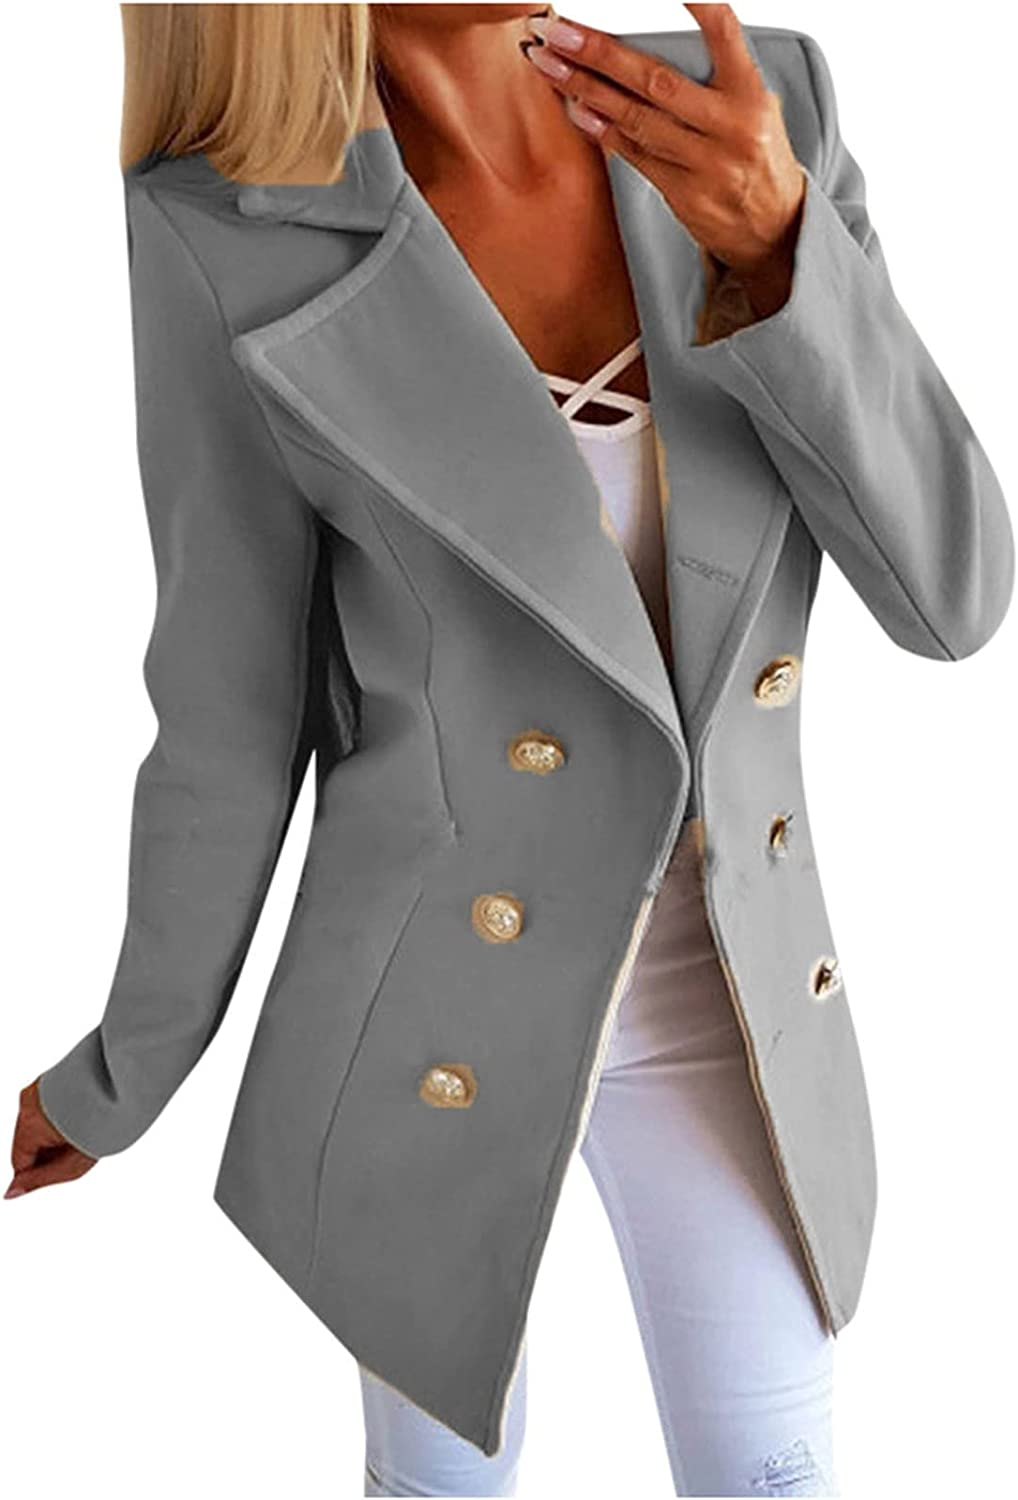 VonVonCo Fashion Business Casual Tops for Women Pure Open Front Cardigan Formal Long Sleeve Casual Tweed Jacket